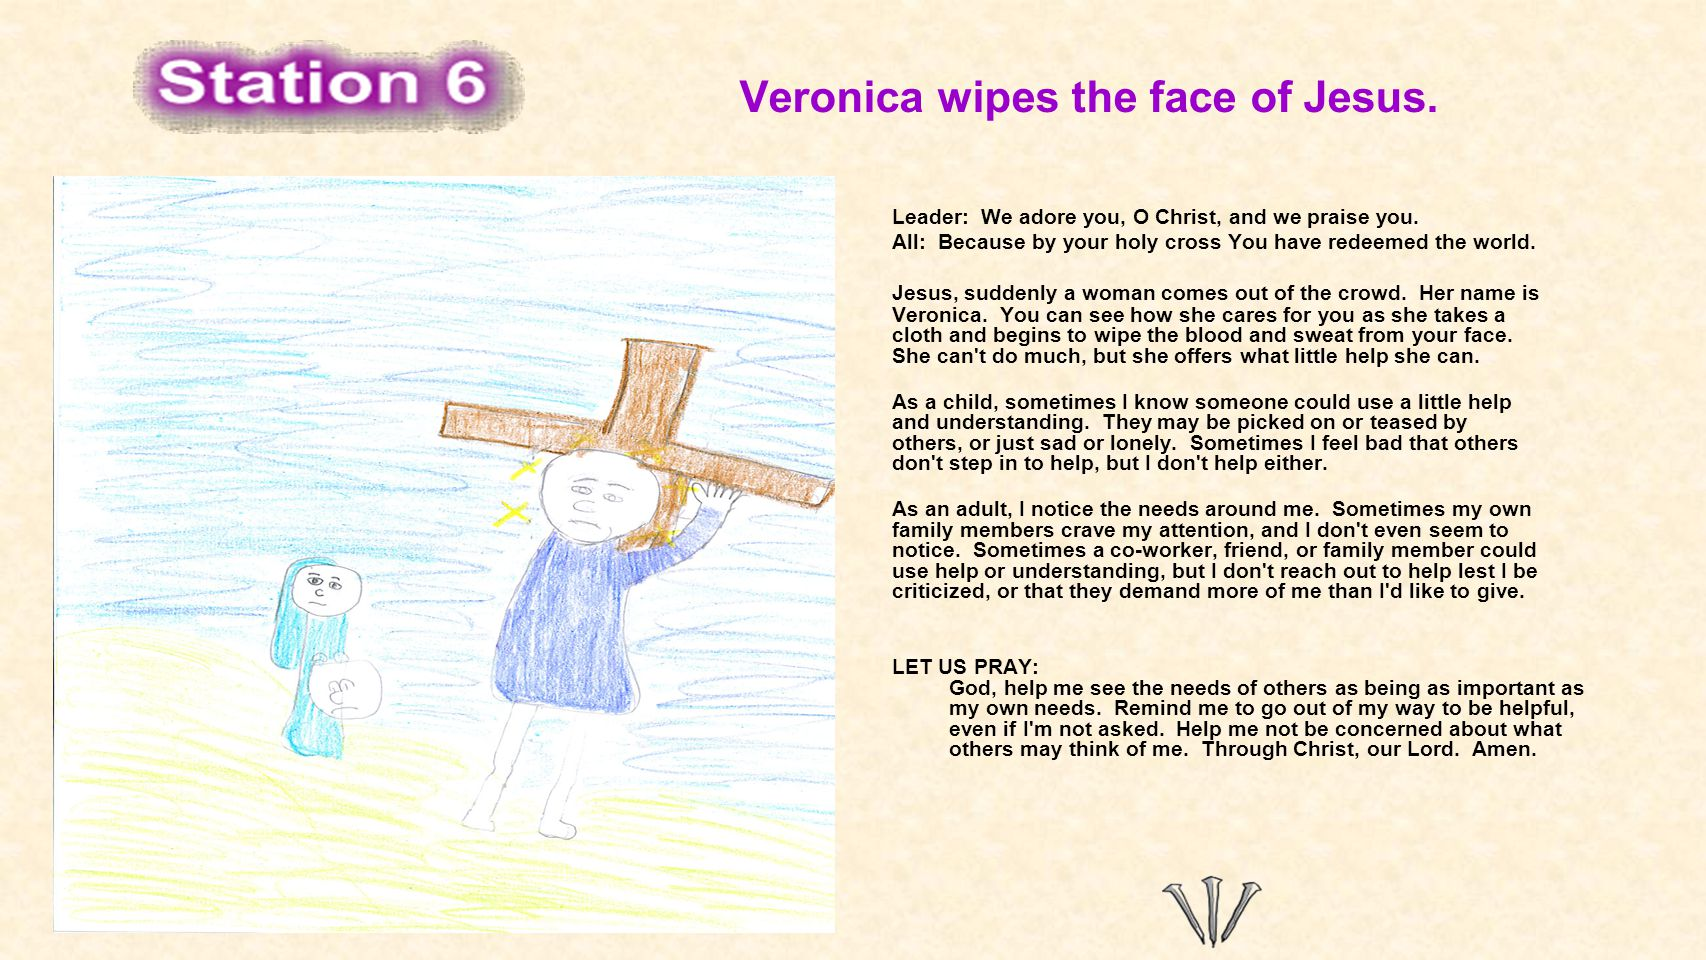 Veronica wipes the face of Jesus. Leader: We adore you, O Christ, and we praise you. All: Because by your holy cross You have redeemed the world. Jesu